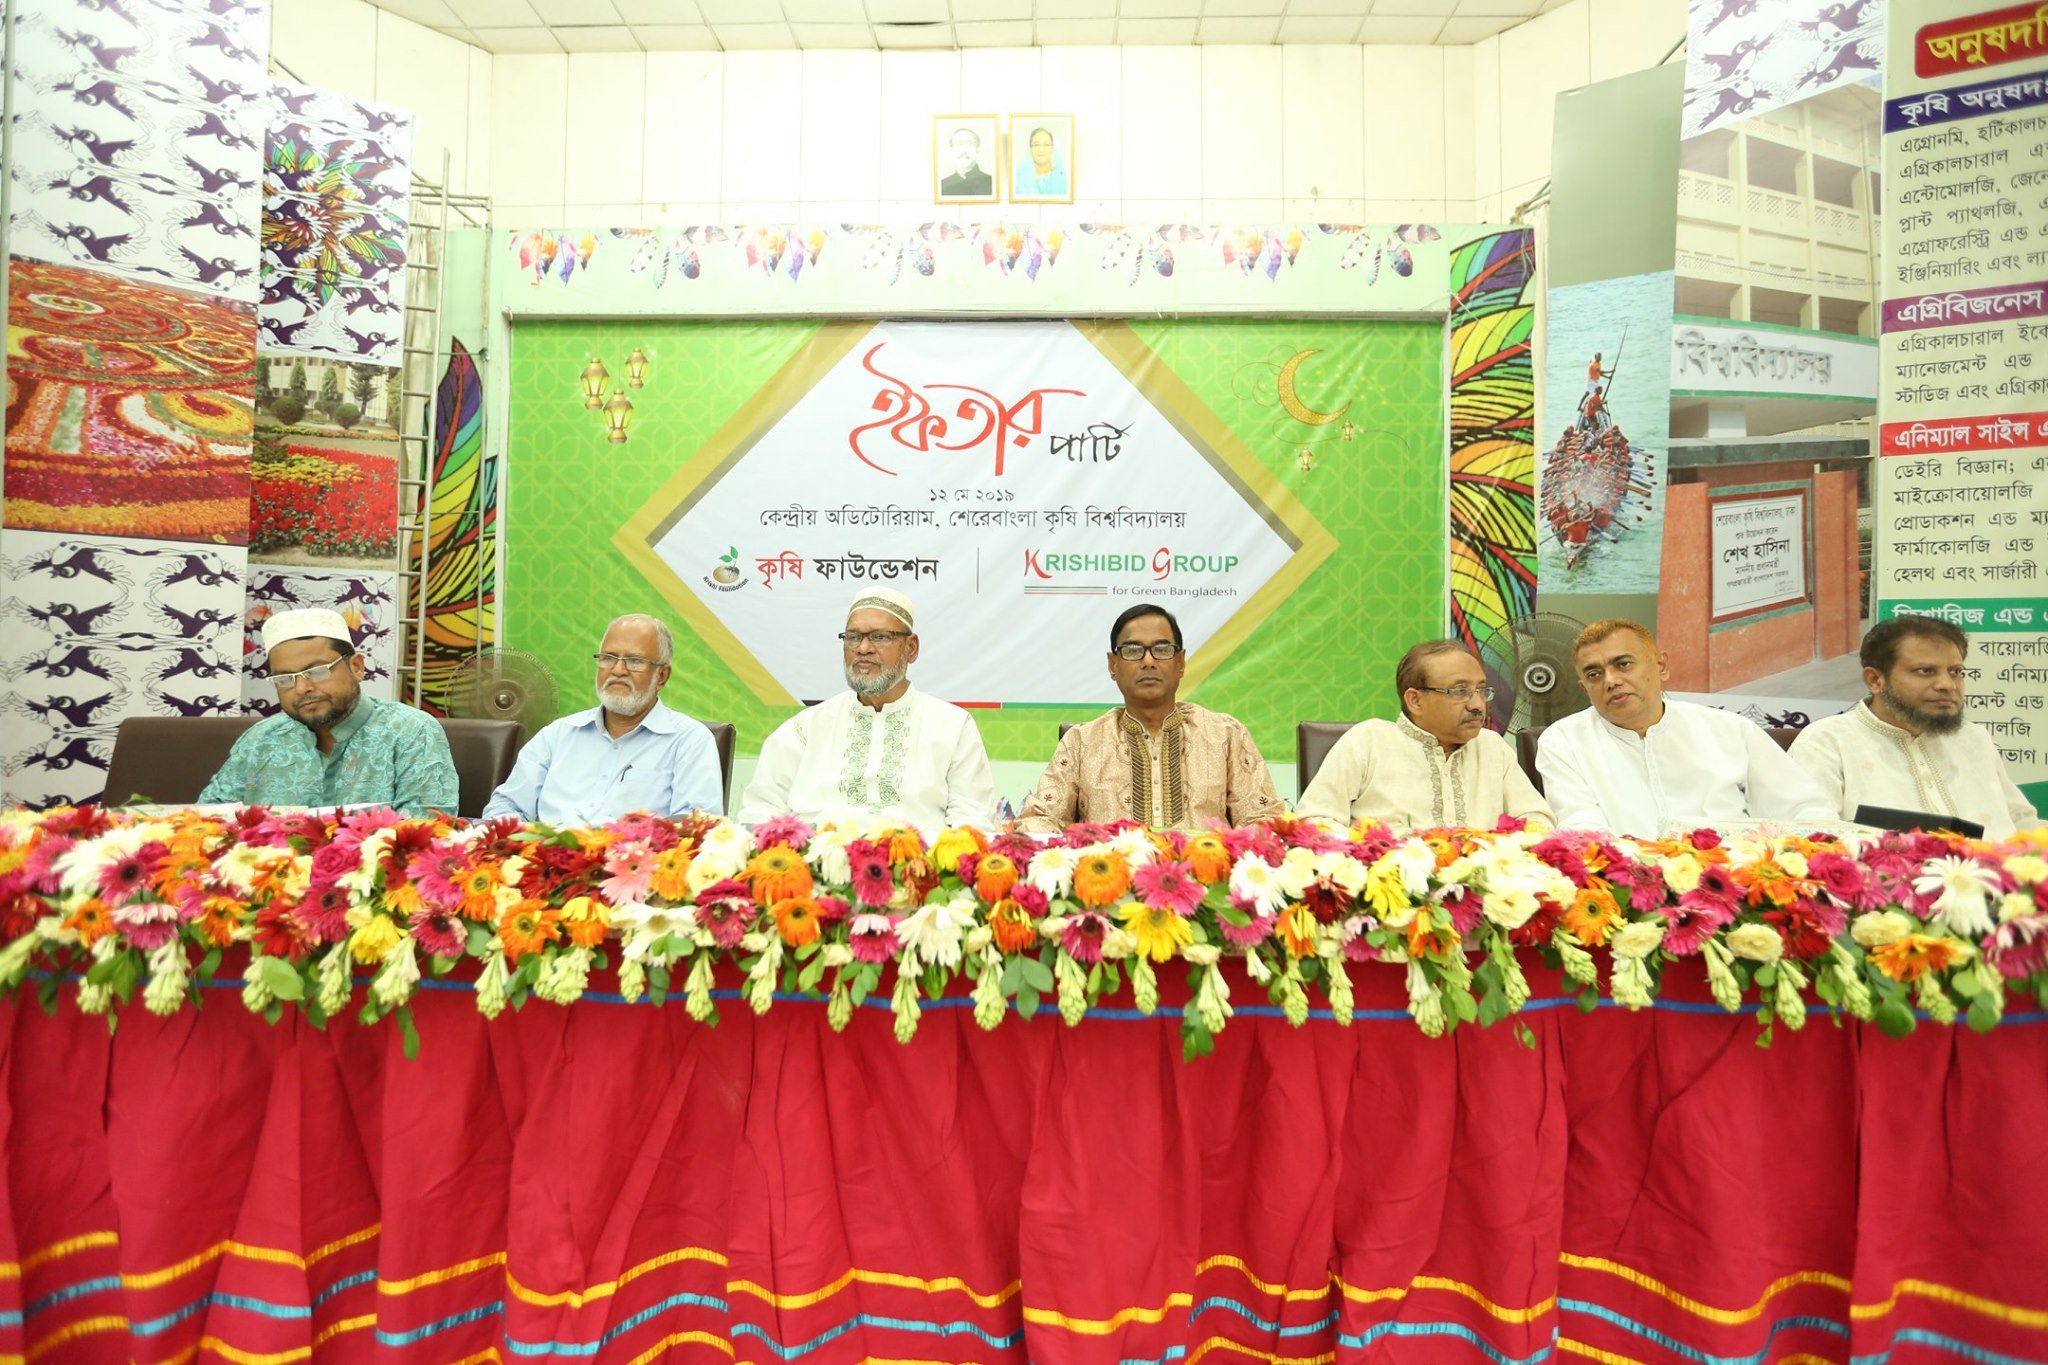 Iftar Party of Krishi Foundation at the Central Auditorium of Sher-e-Bangla Agricultural University.